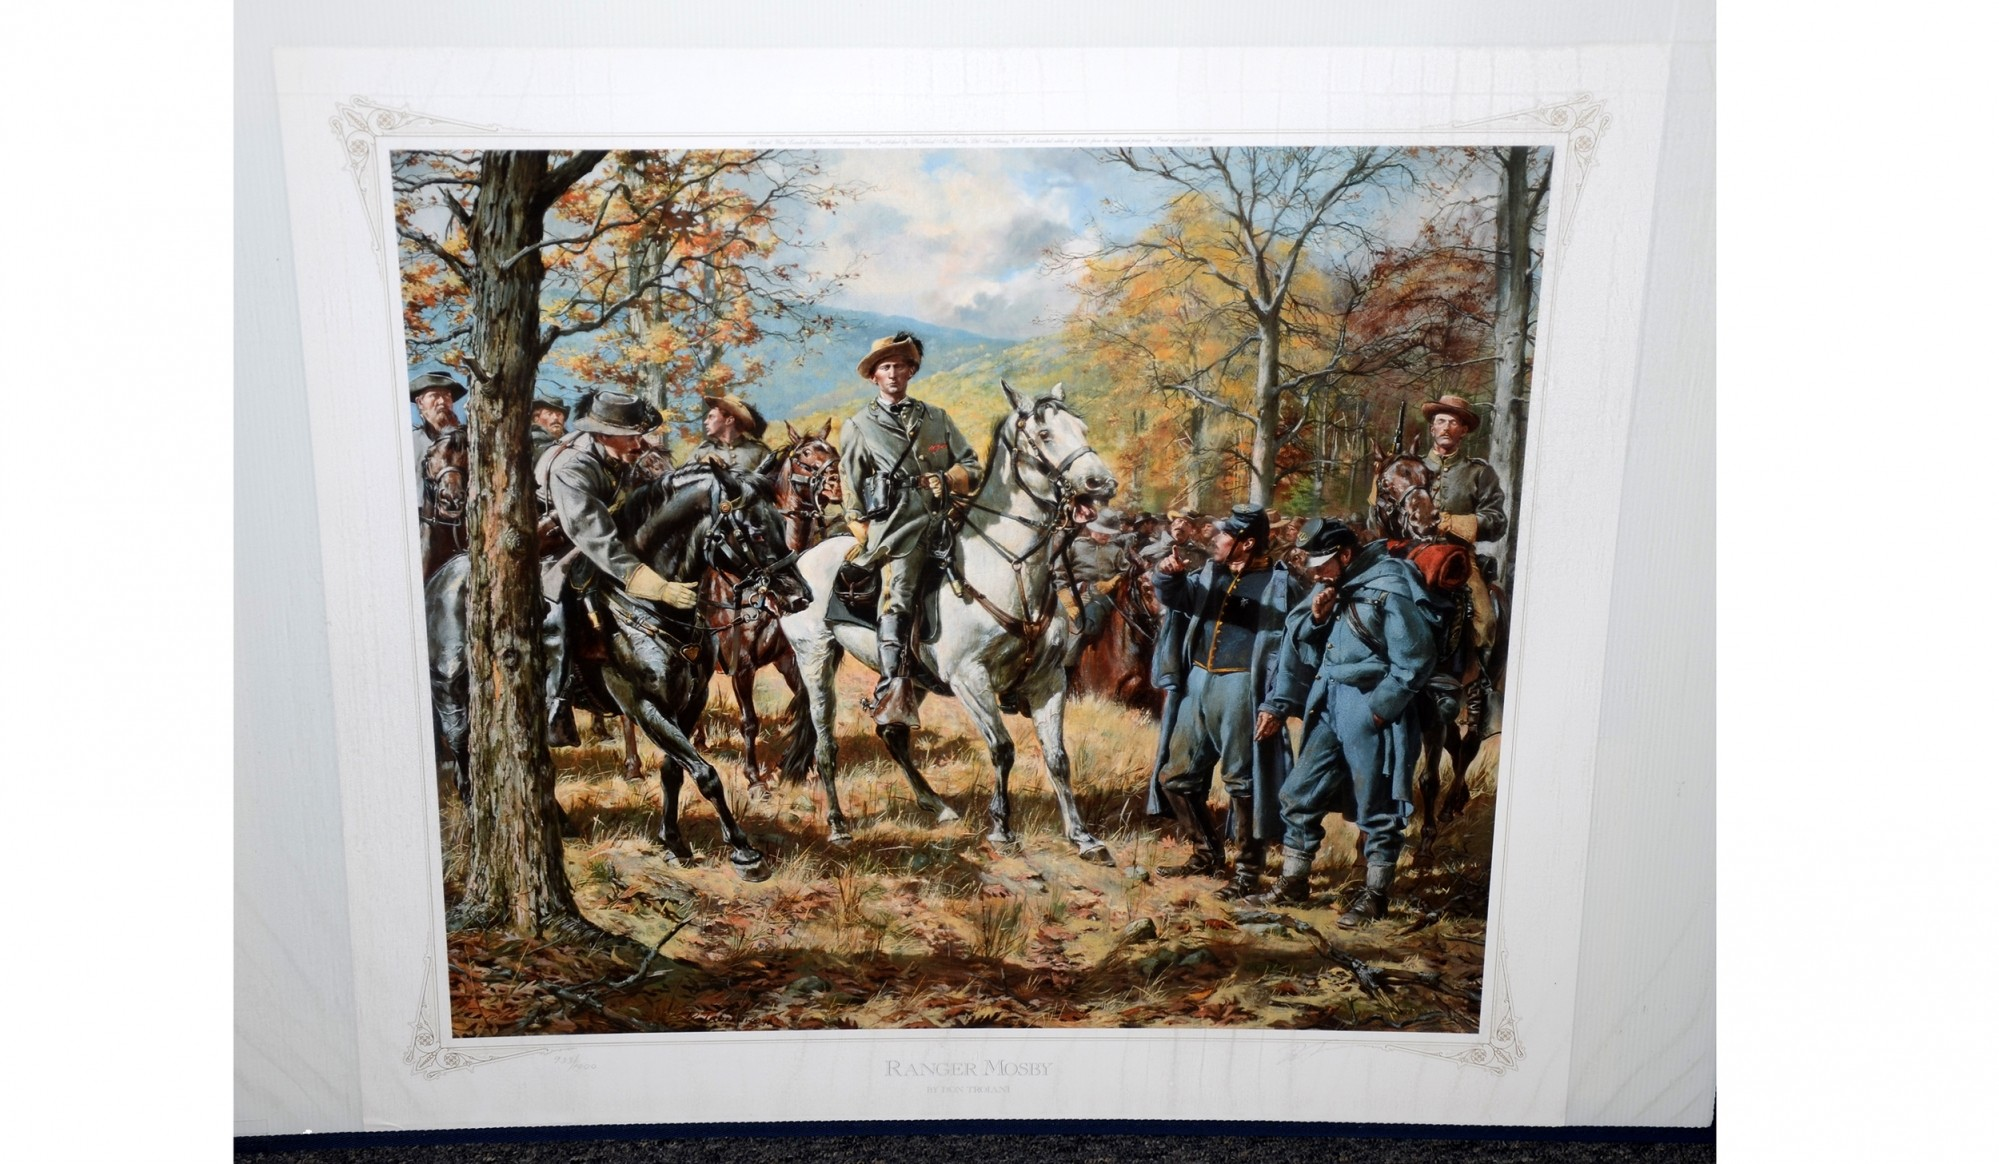 Ranger Mosby Don Troiani Horse Soldier